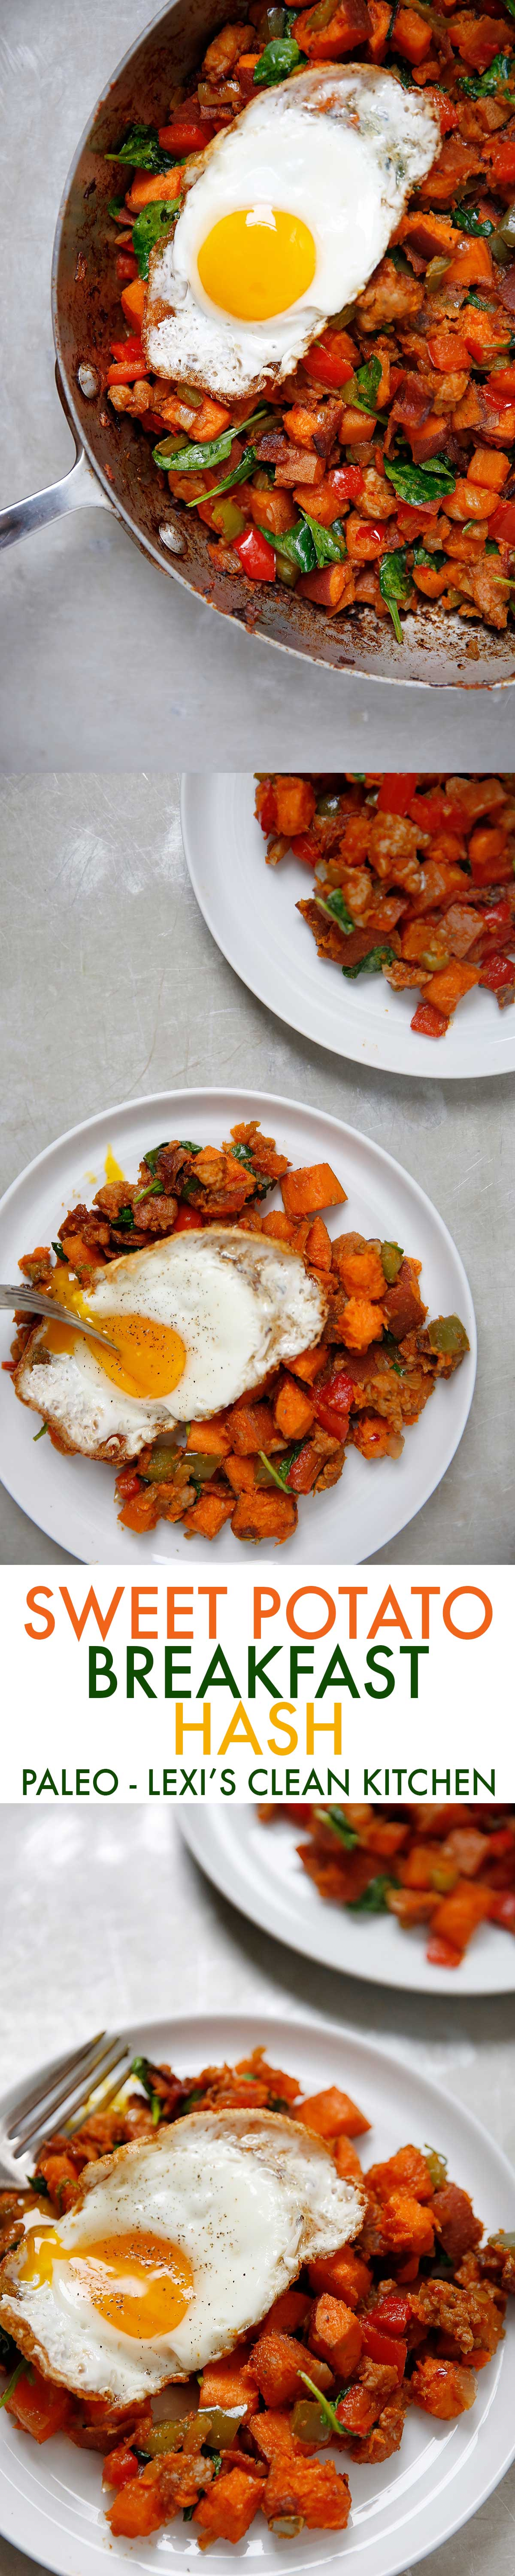 Paleo Breakfast Hash (Whole30 compliant, no added sugar, grain-free, gluten-free) | Lexi's Clean Kitchen